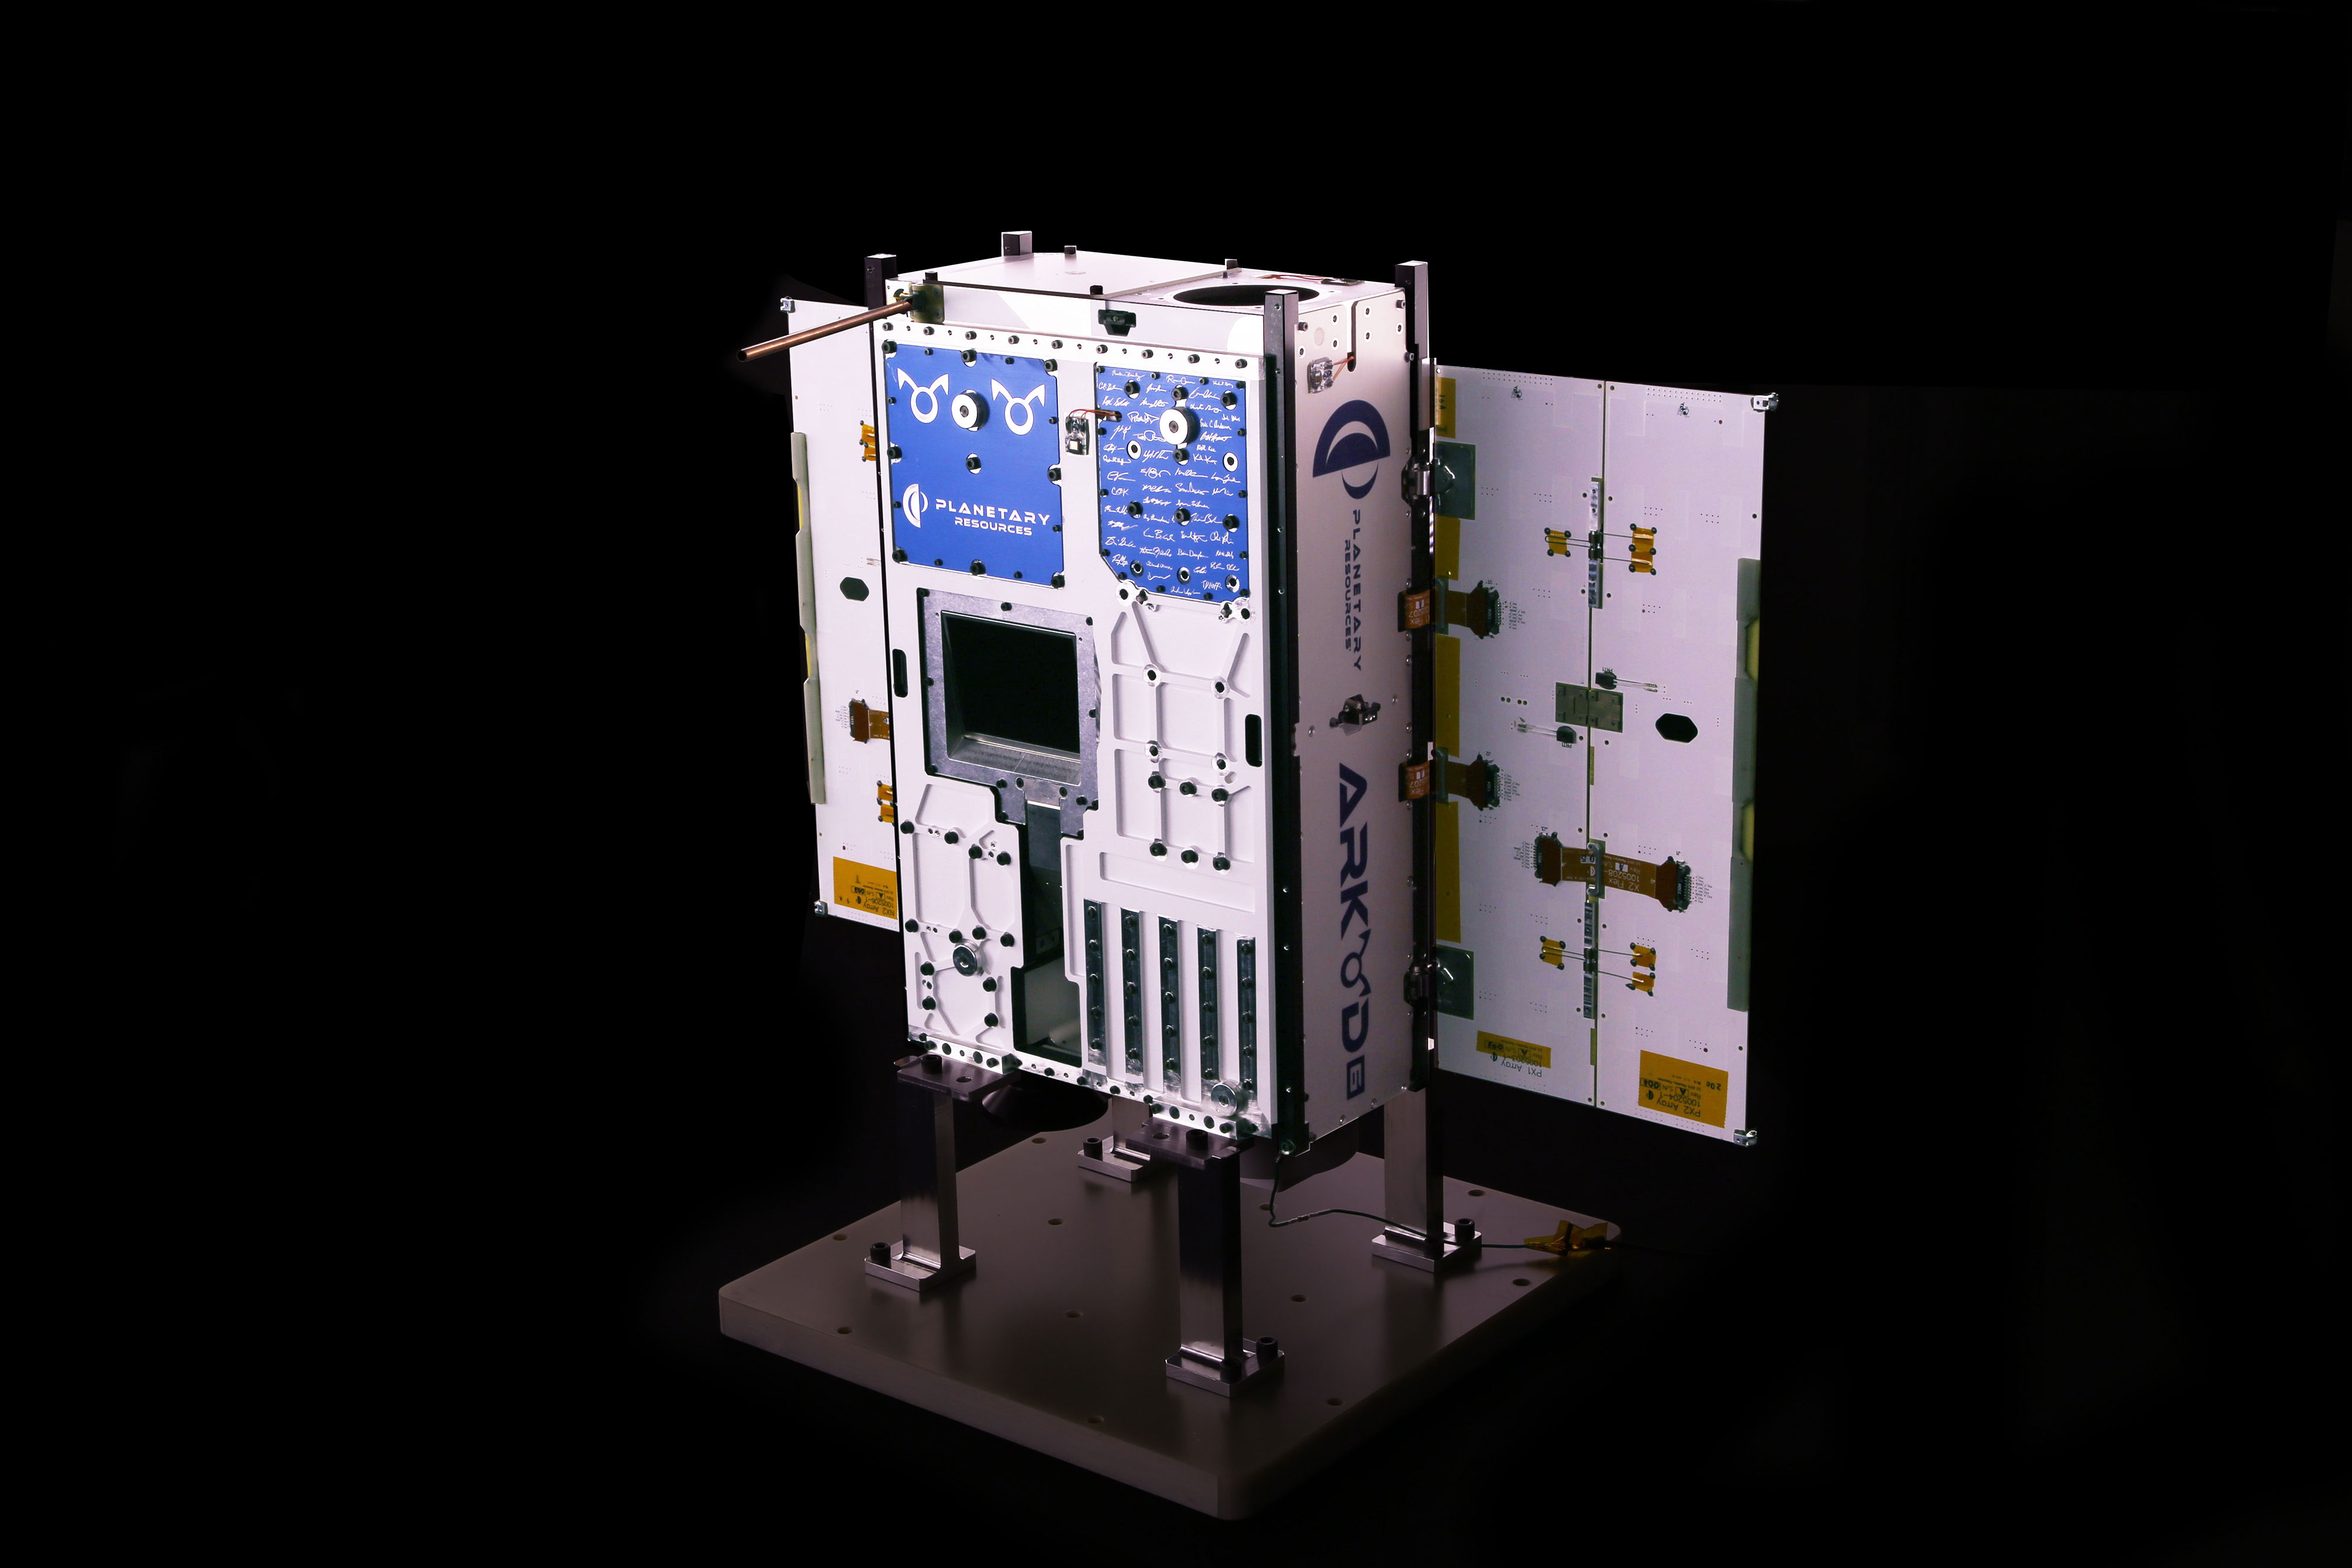 The Arkyd 6 spacecraft, with the first ever commercial thermographic sensor, is ready for delivery to the launch pad for launch this year. Credit: Planetary Resources